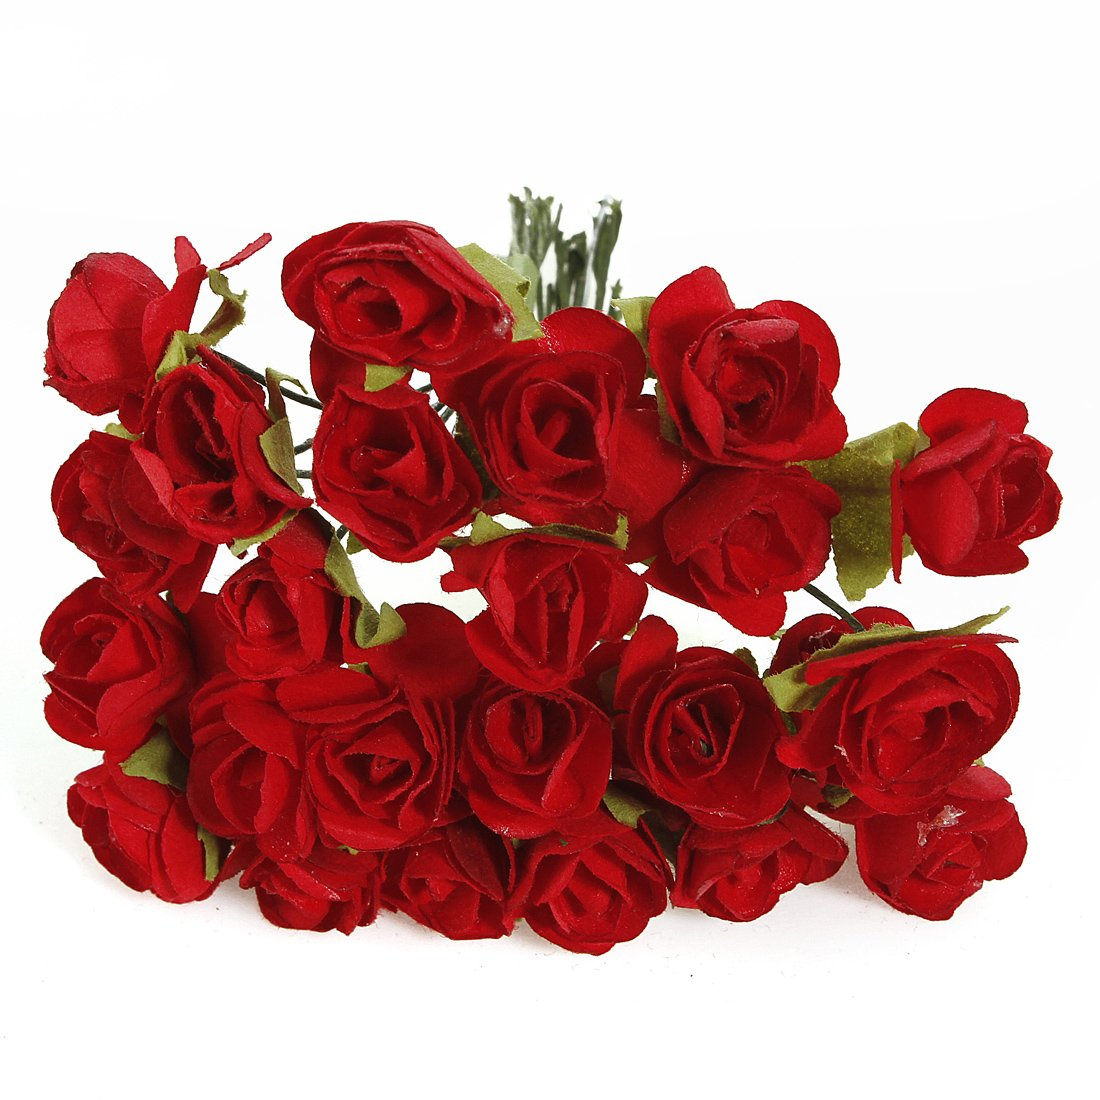 144 X Artificial Paper Red Rose Flower Wedding Craft Decor Ad